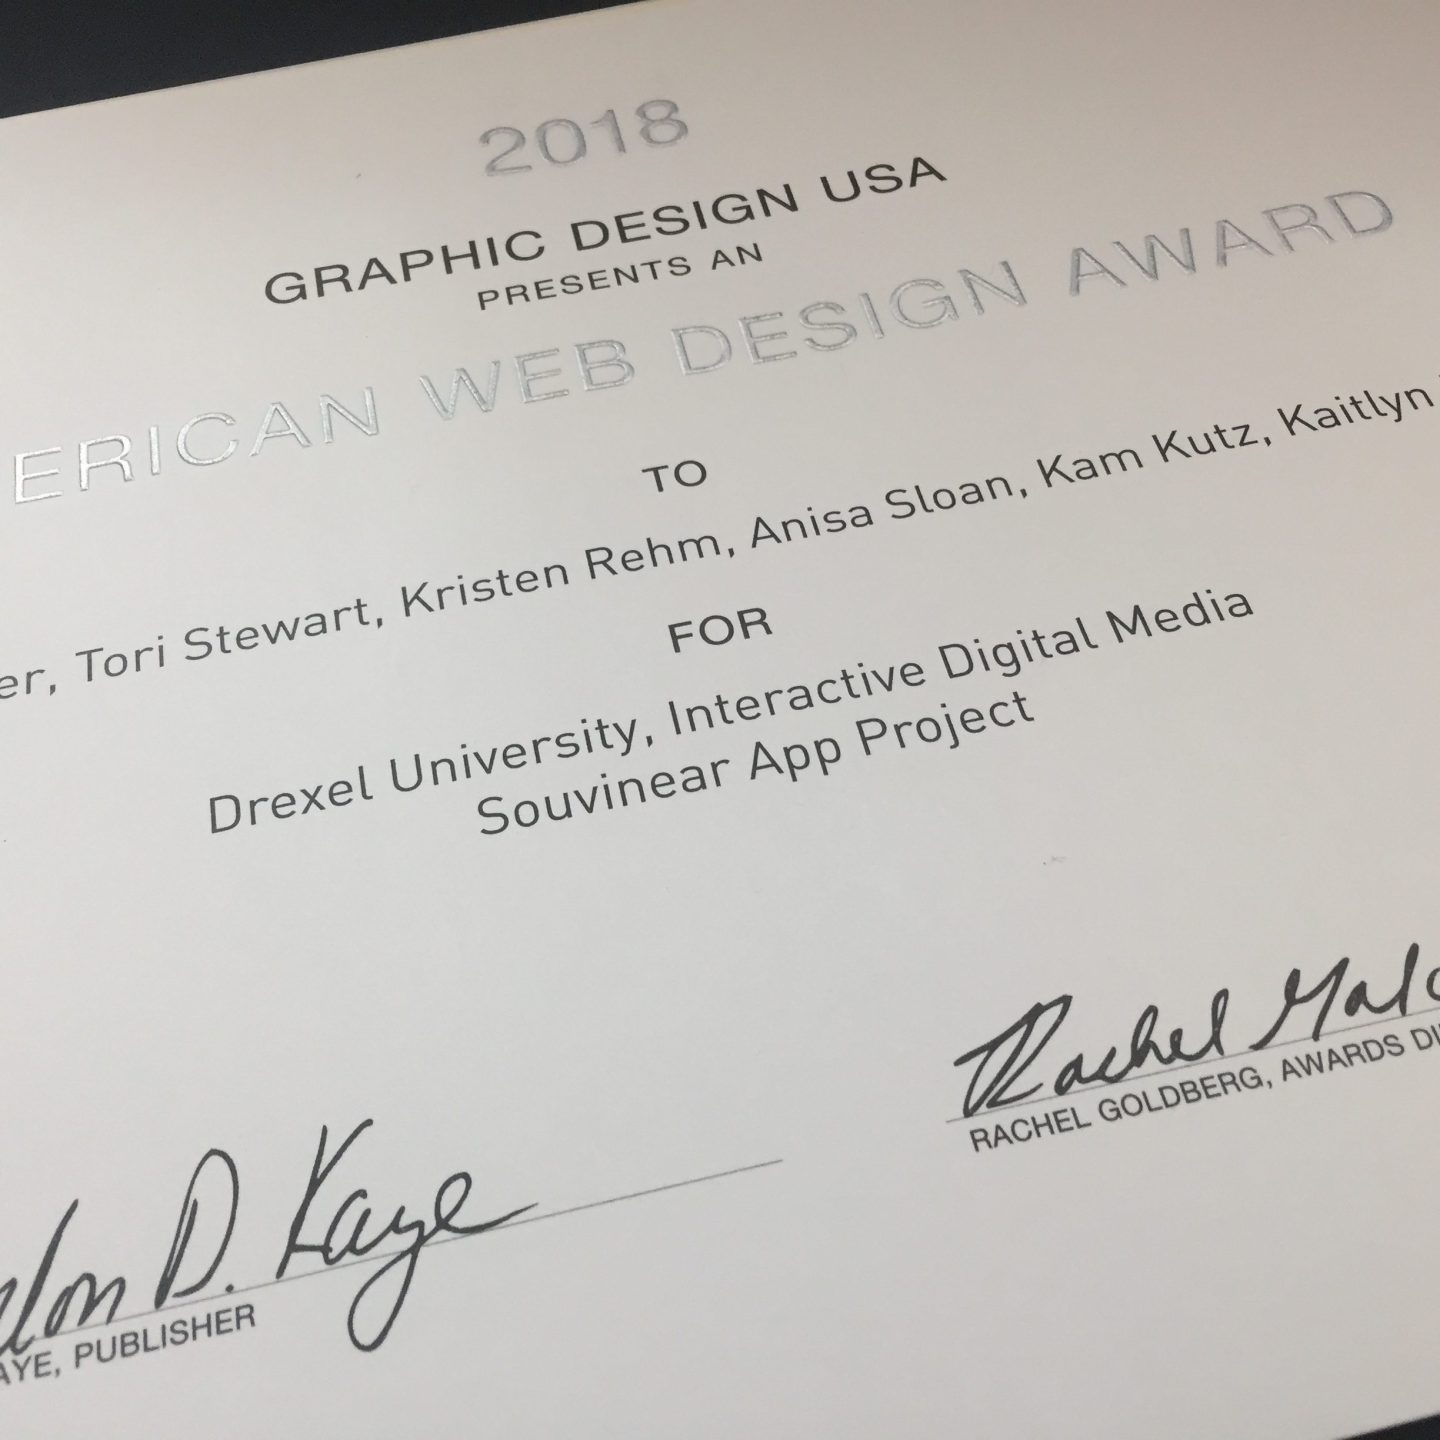 Souvinear Wins 2018 GDUSA American Web Design Award